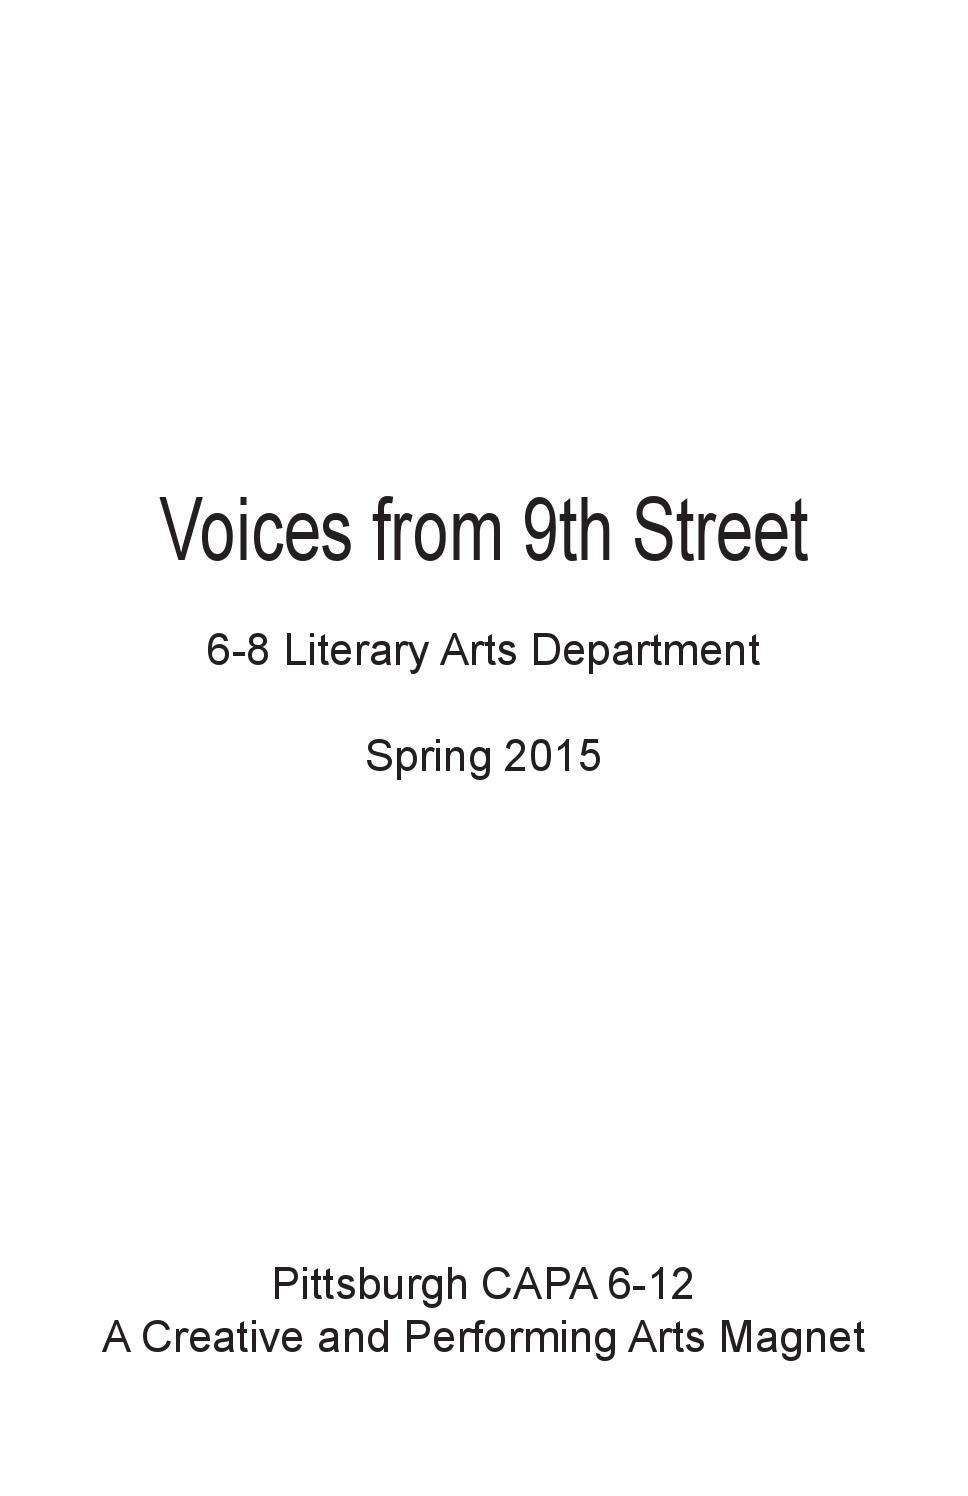 Voices from 9th Street: 6-8 Literary Arts by Mara Cregan - issuu